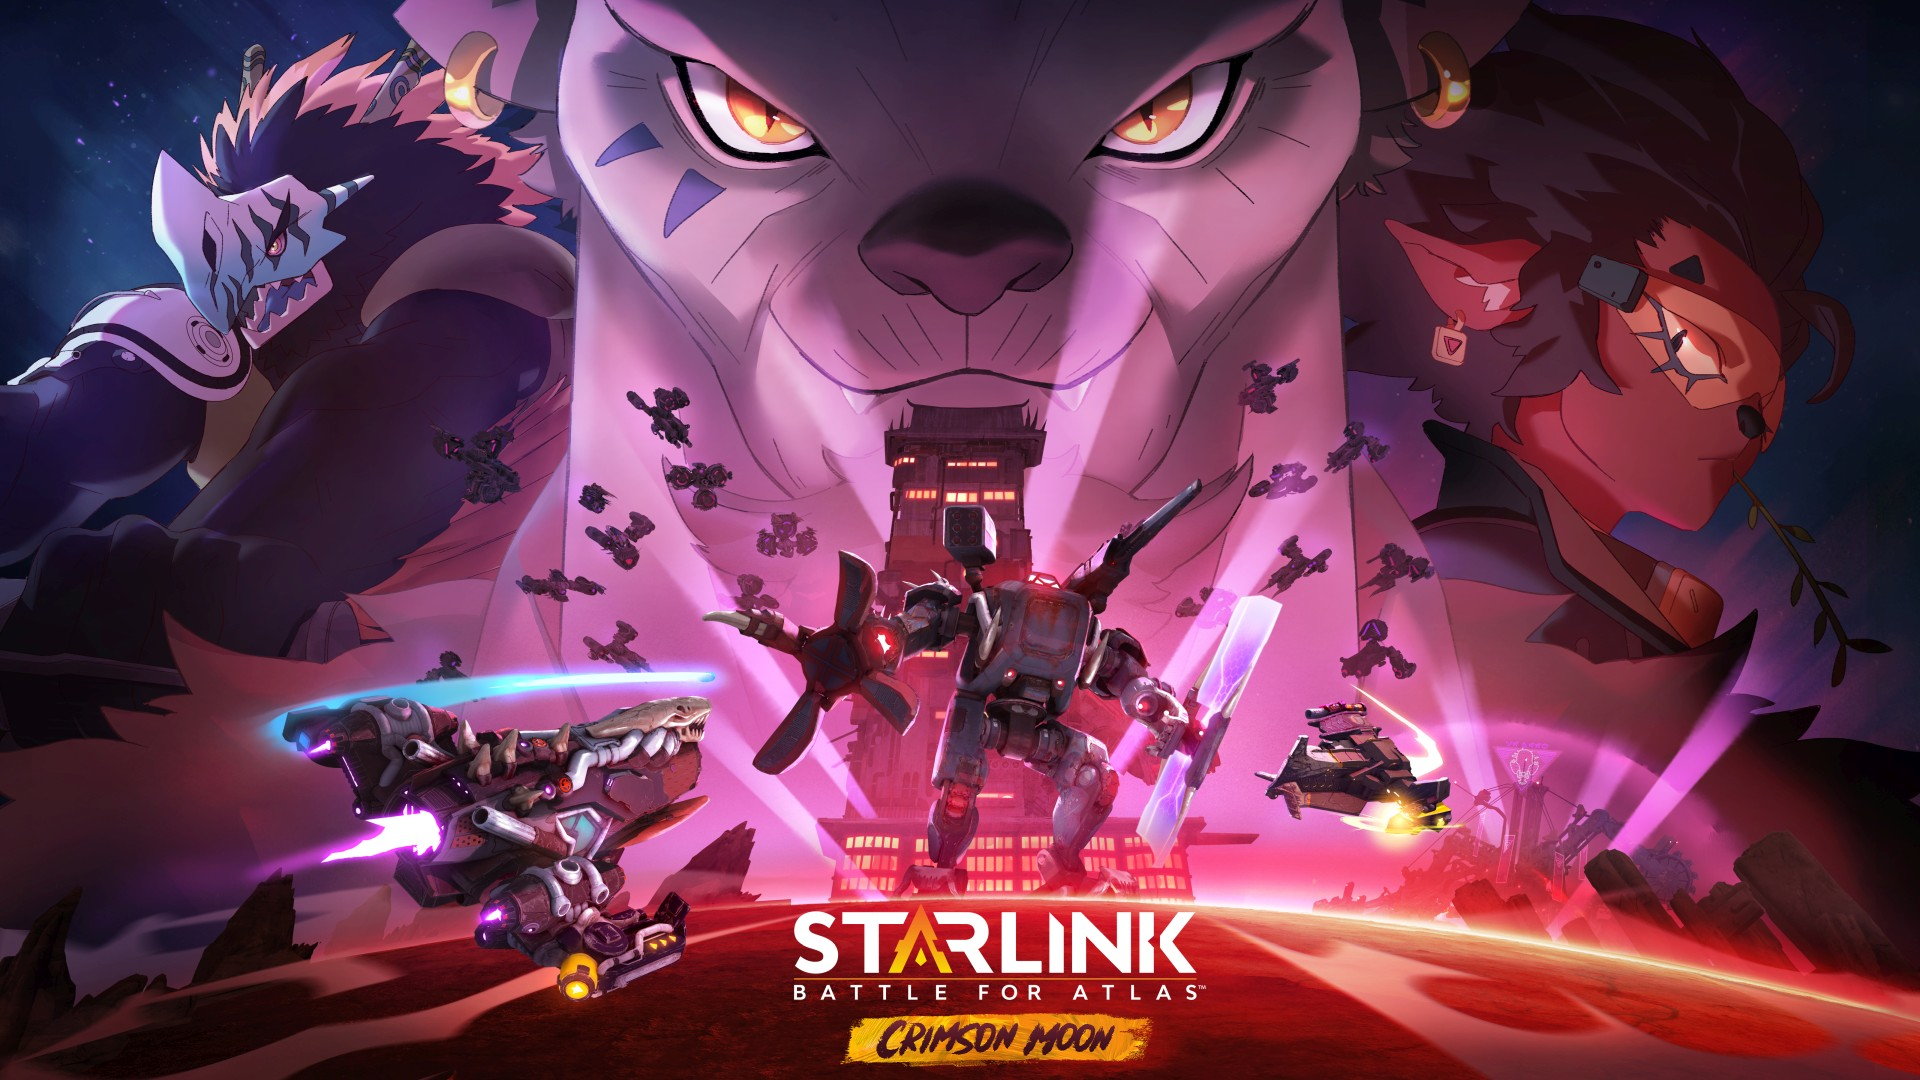 Starlink Battle for Atlas Das Crimson Moon-Updat (2)